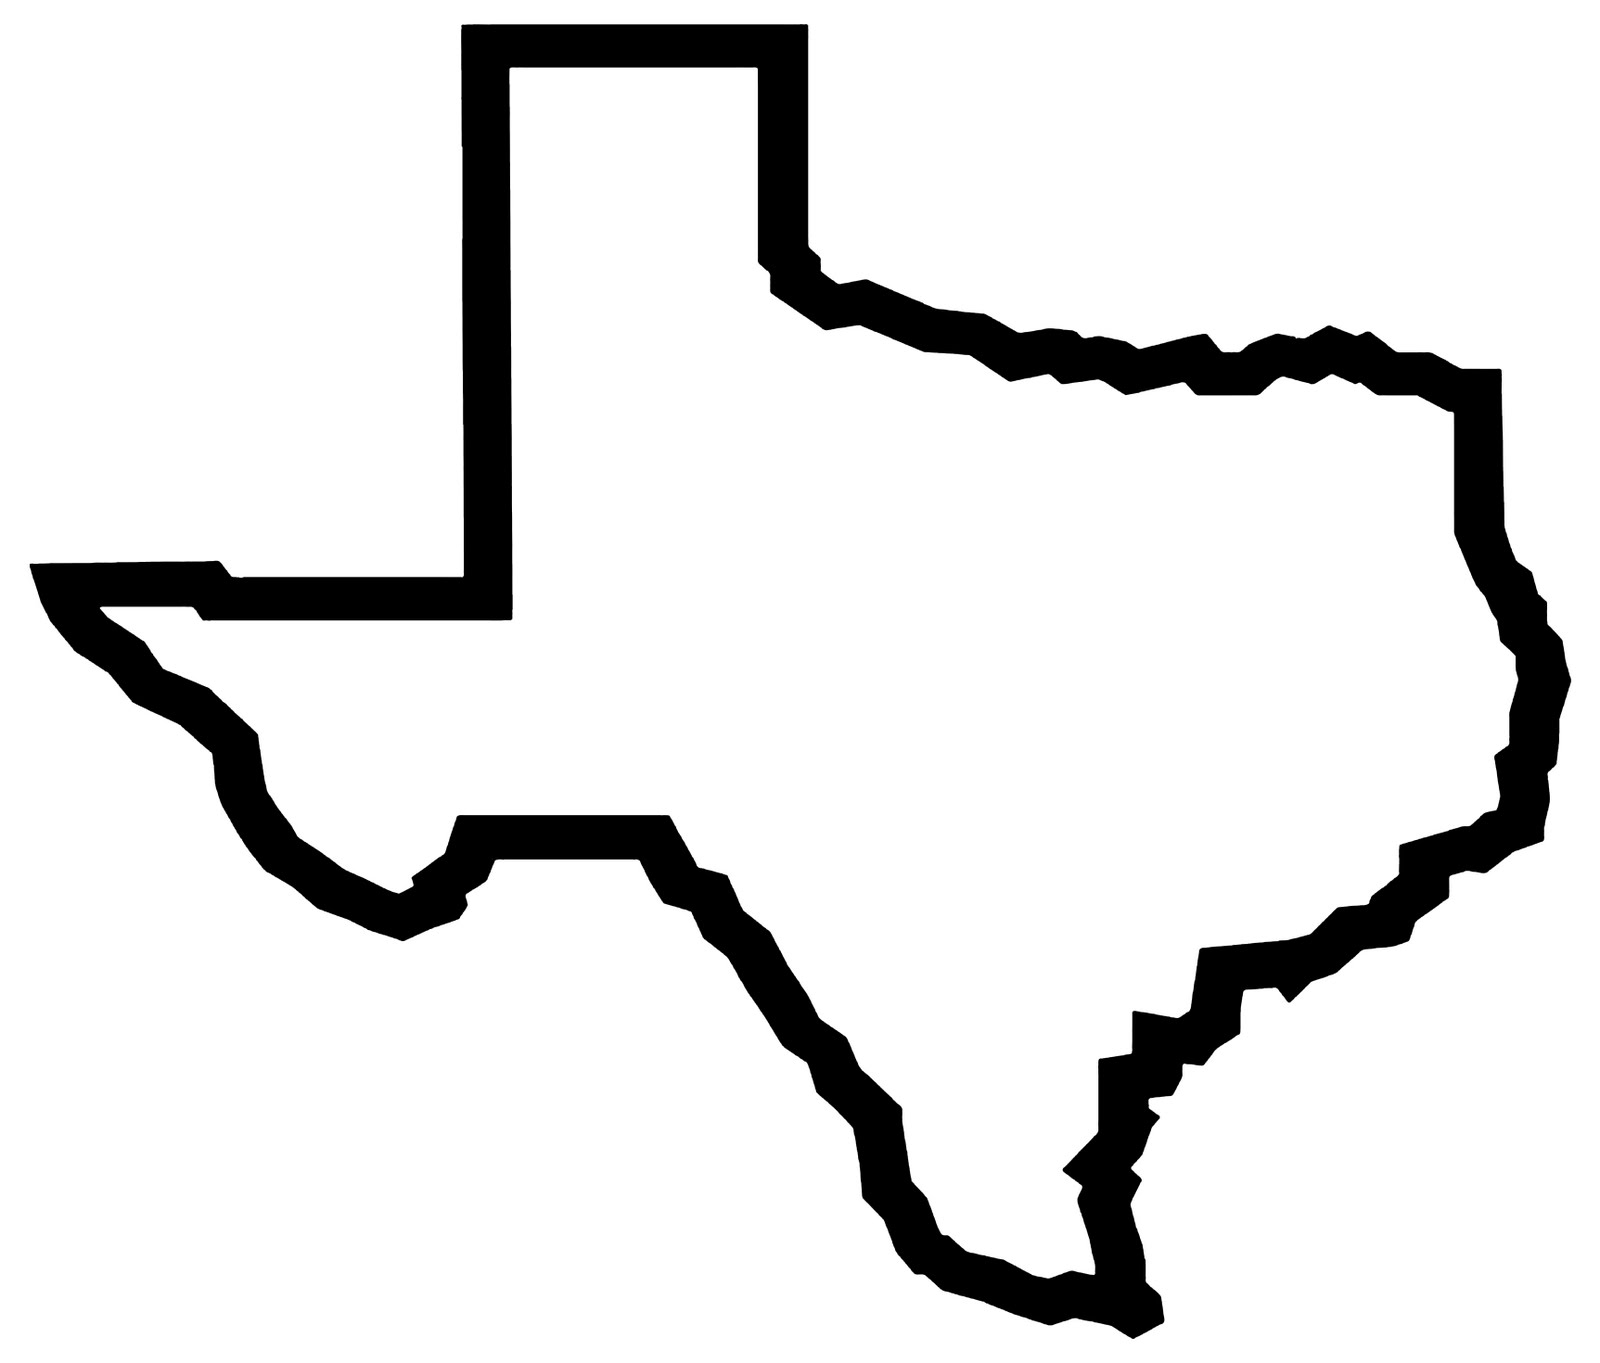 Texas Outline Clipart.